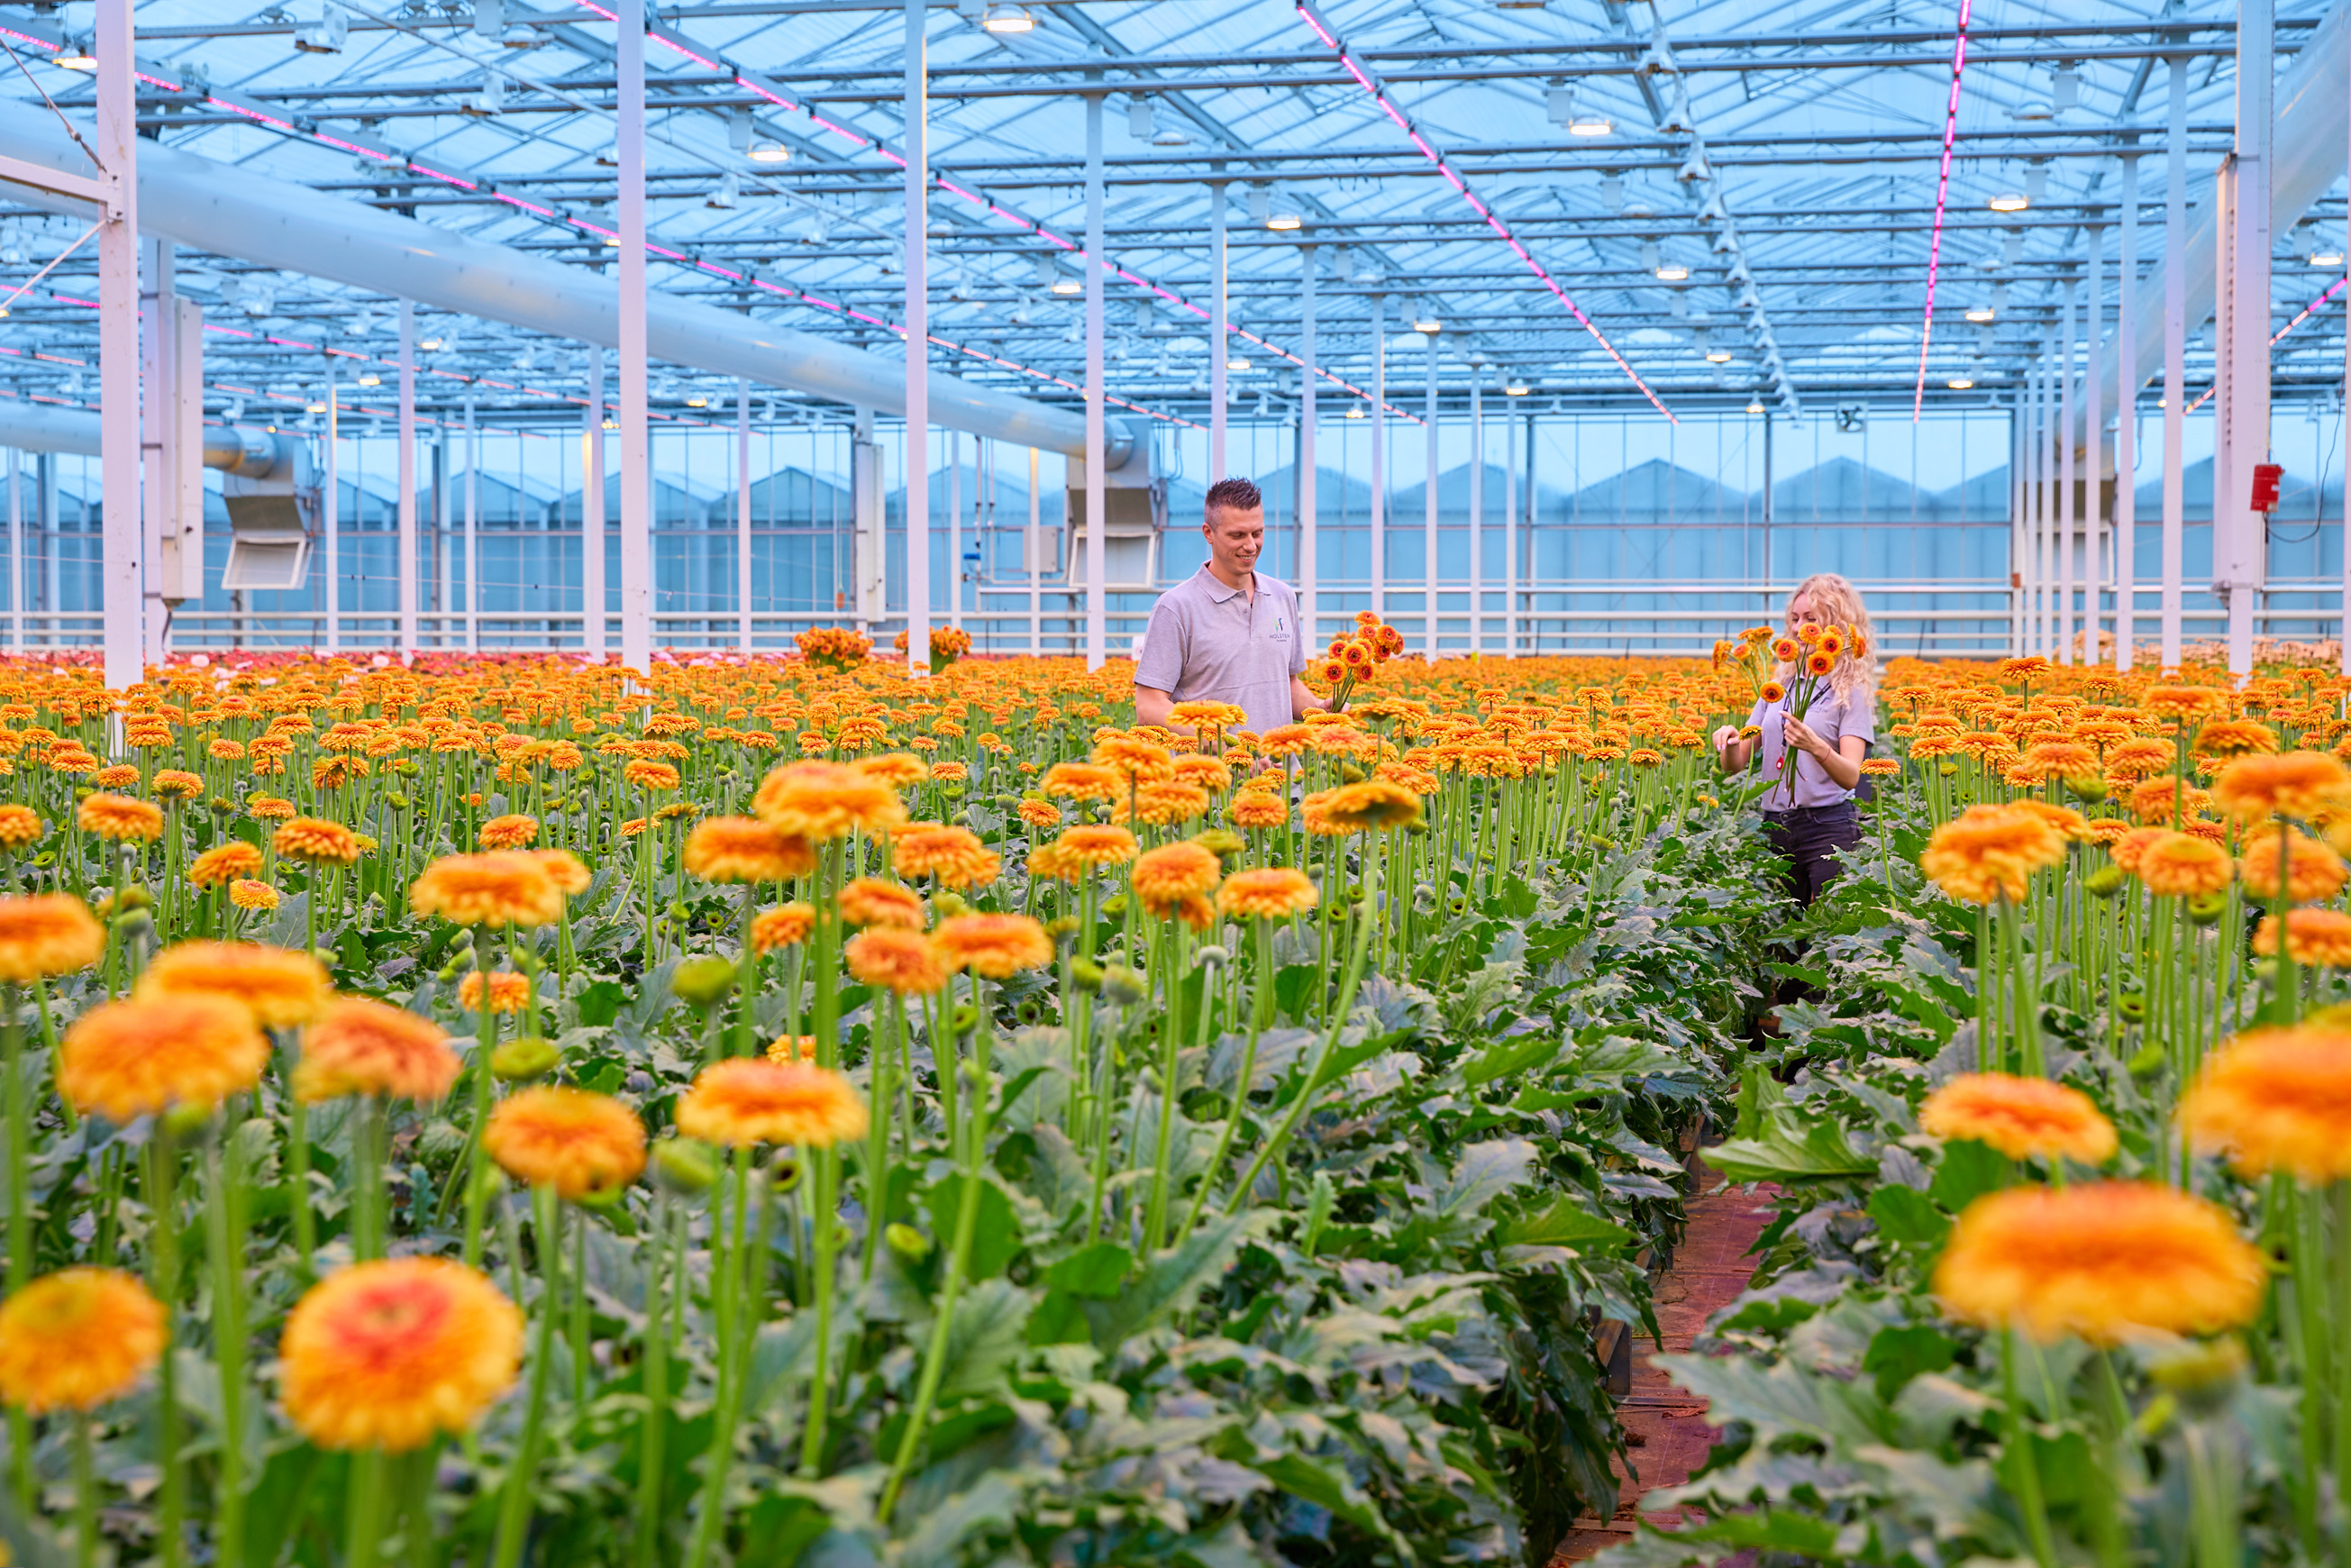 Signify teams up with world's largest gerbera grower Holstein Flowers for 1-hectare Philips GreenPower LED toplighting project